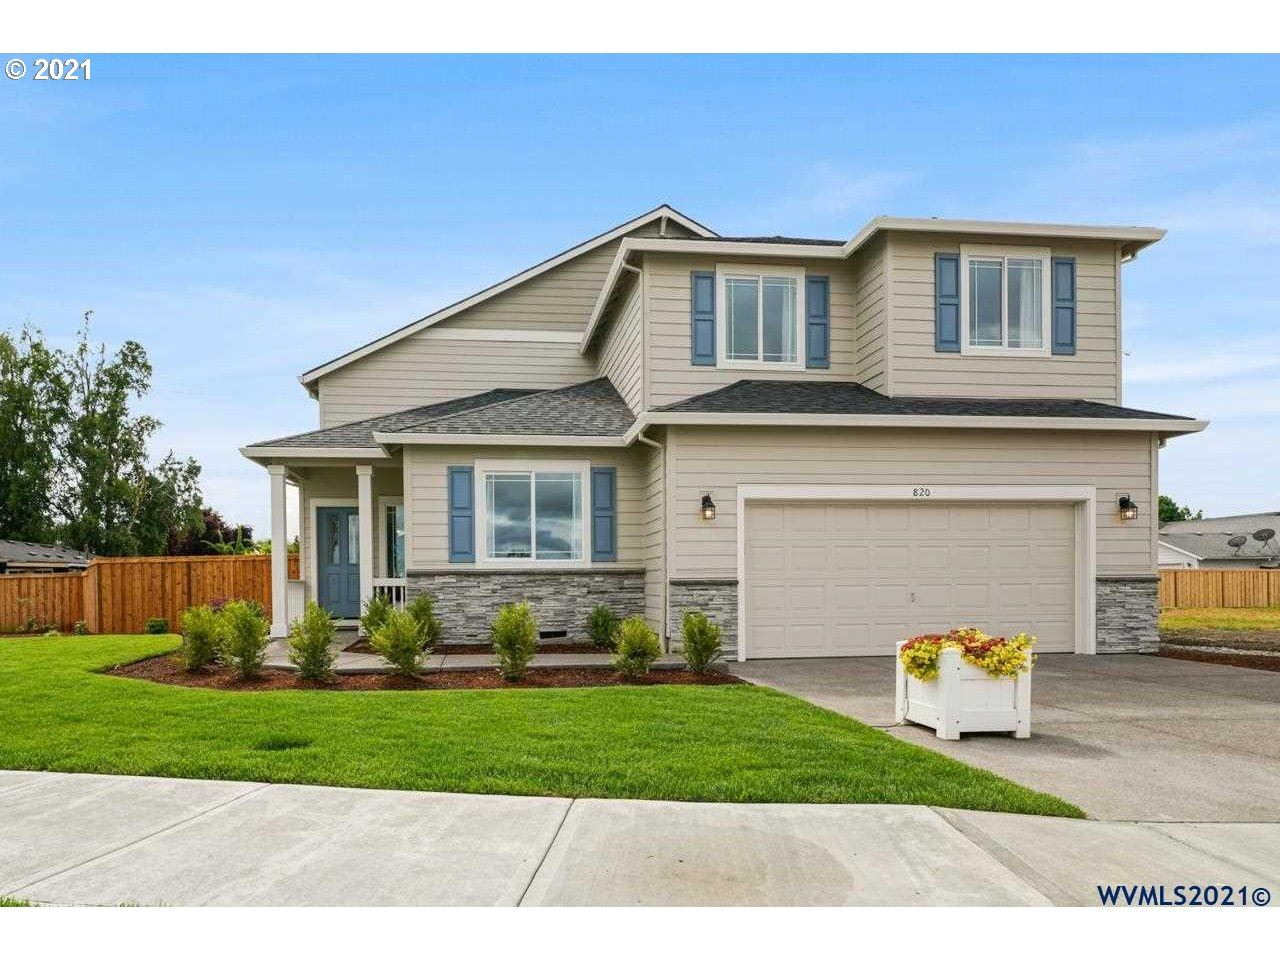 Photo of 1040 Winfield ST, Gervais, OR 97026 (MLS # 21216416)